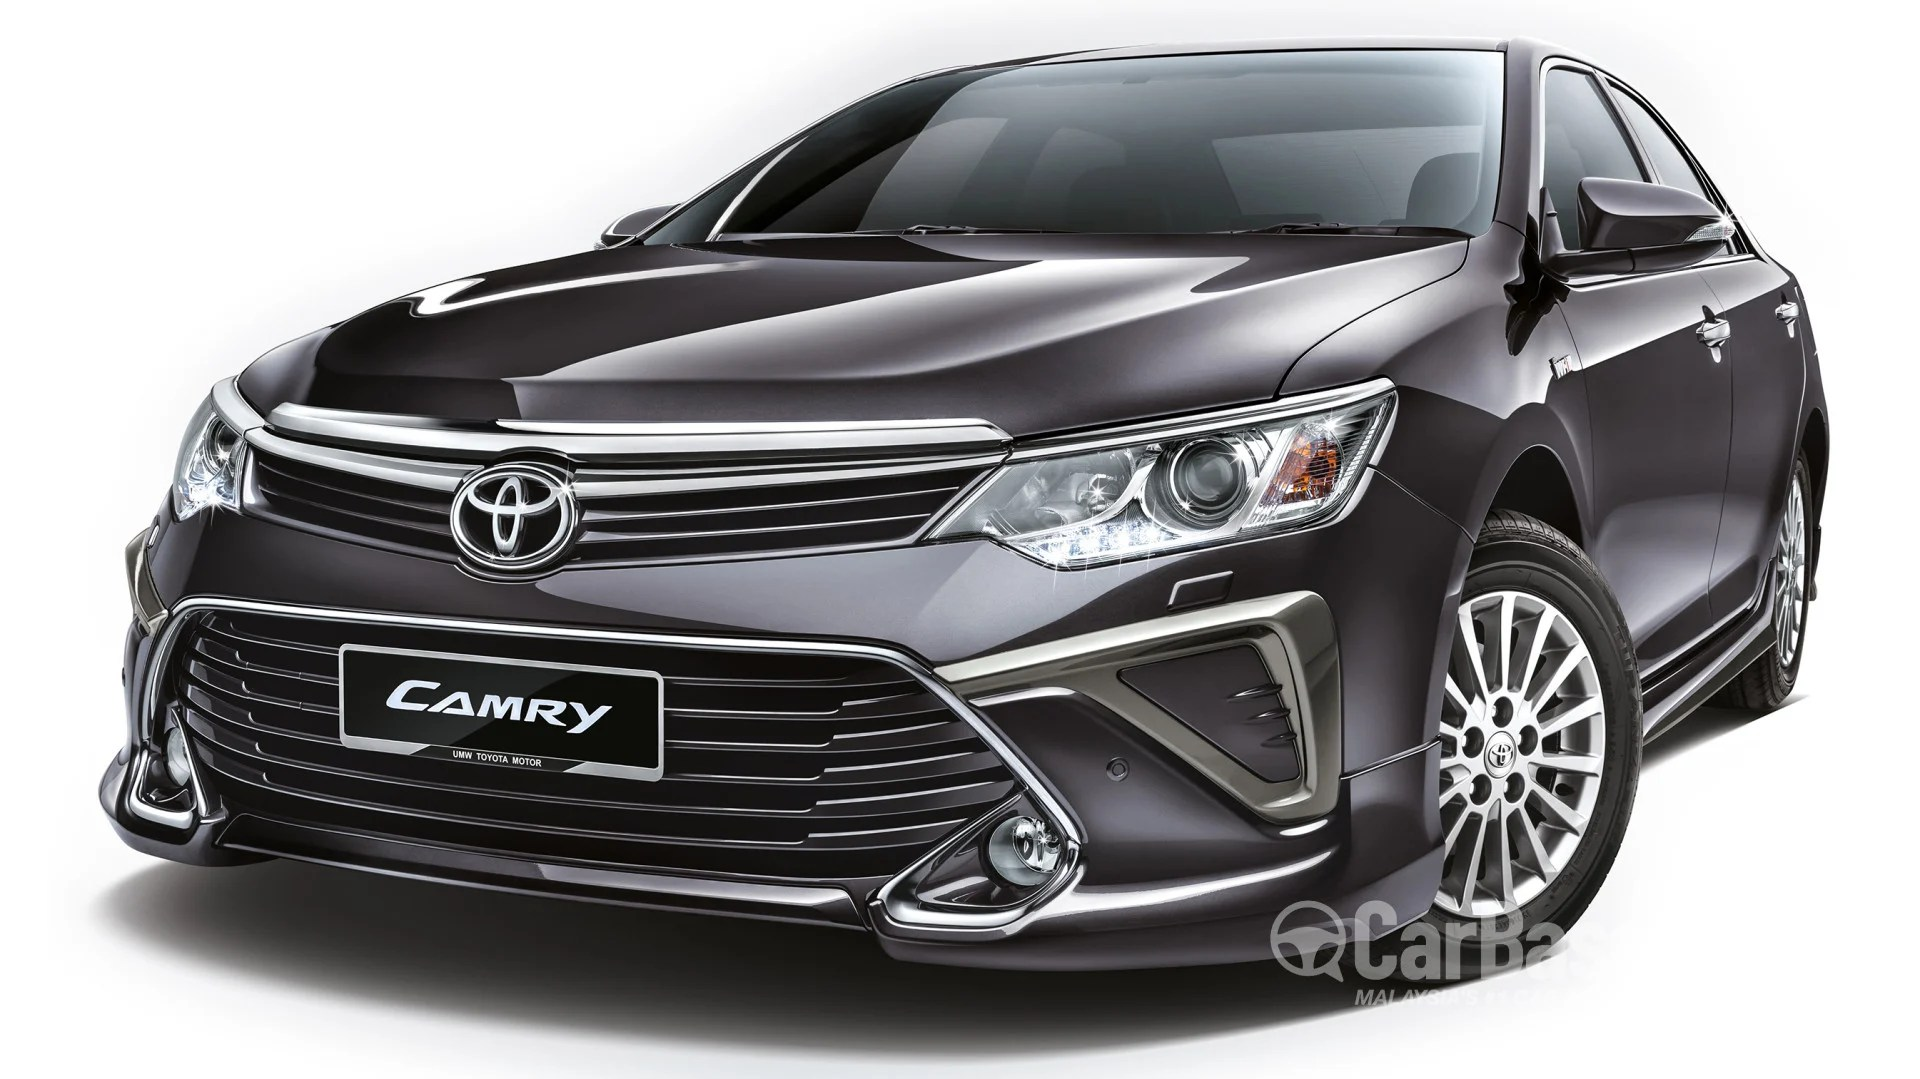 all new toyota camry malaysia foto vellfire mk7 facelift 2015 exterior image 20235 in